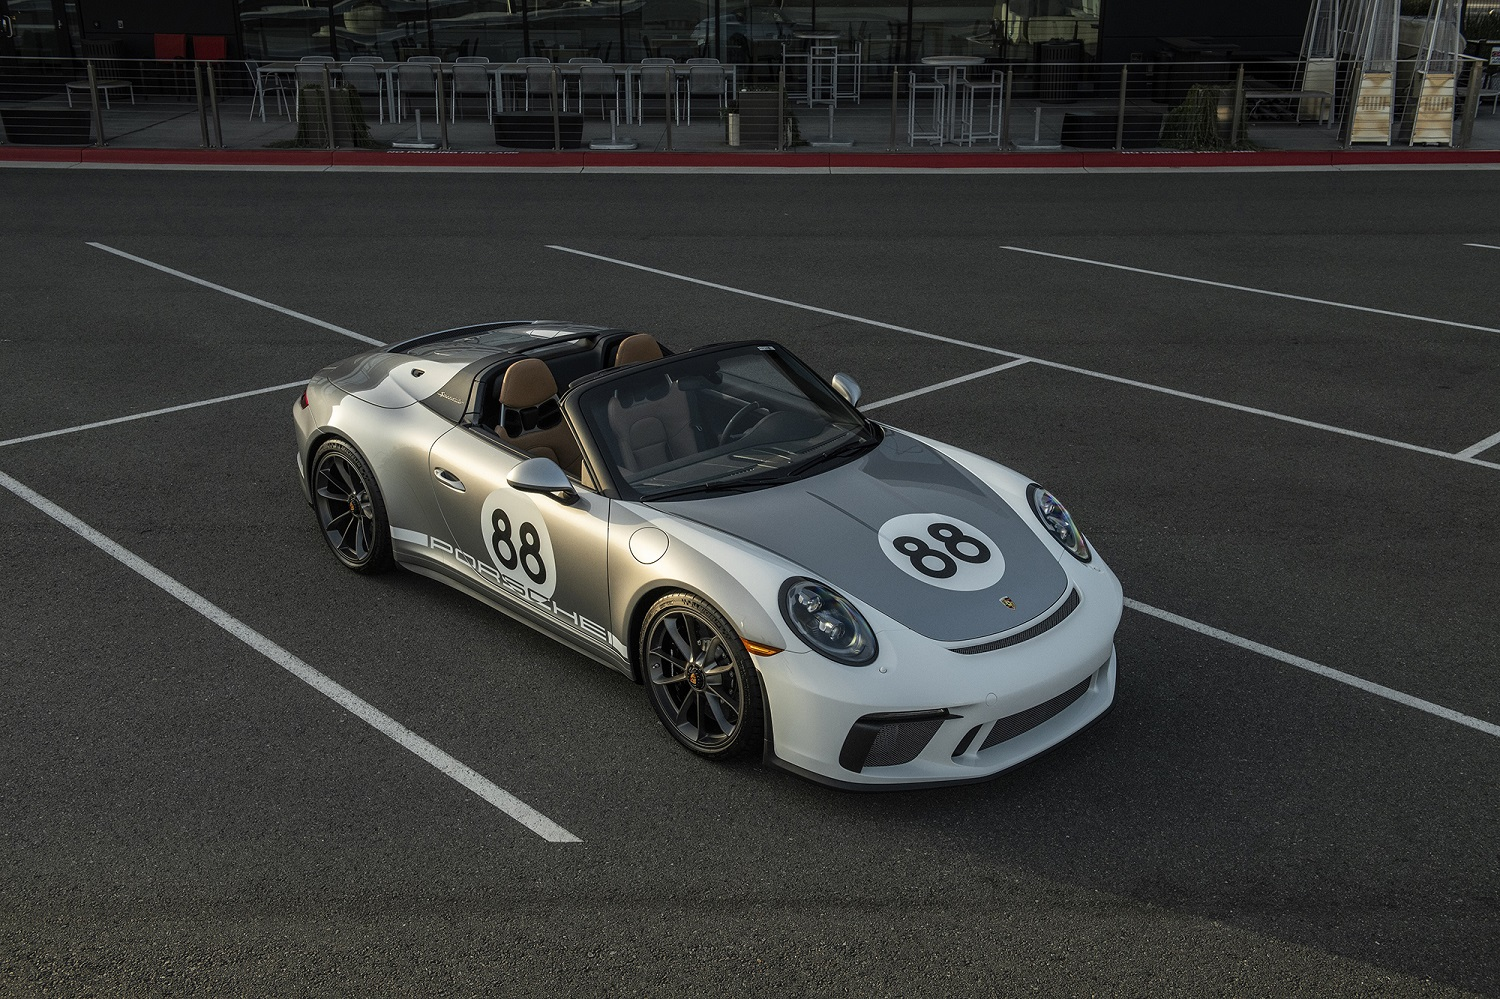 Porsche's $1 Million Benefit for United Way COVID-19 Relief